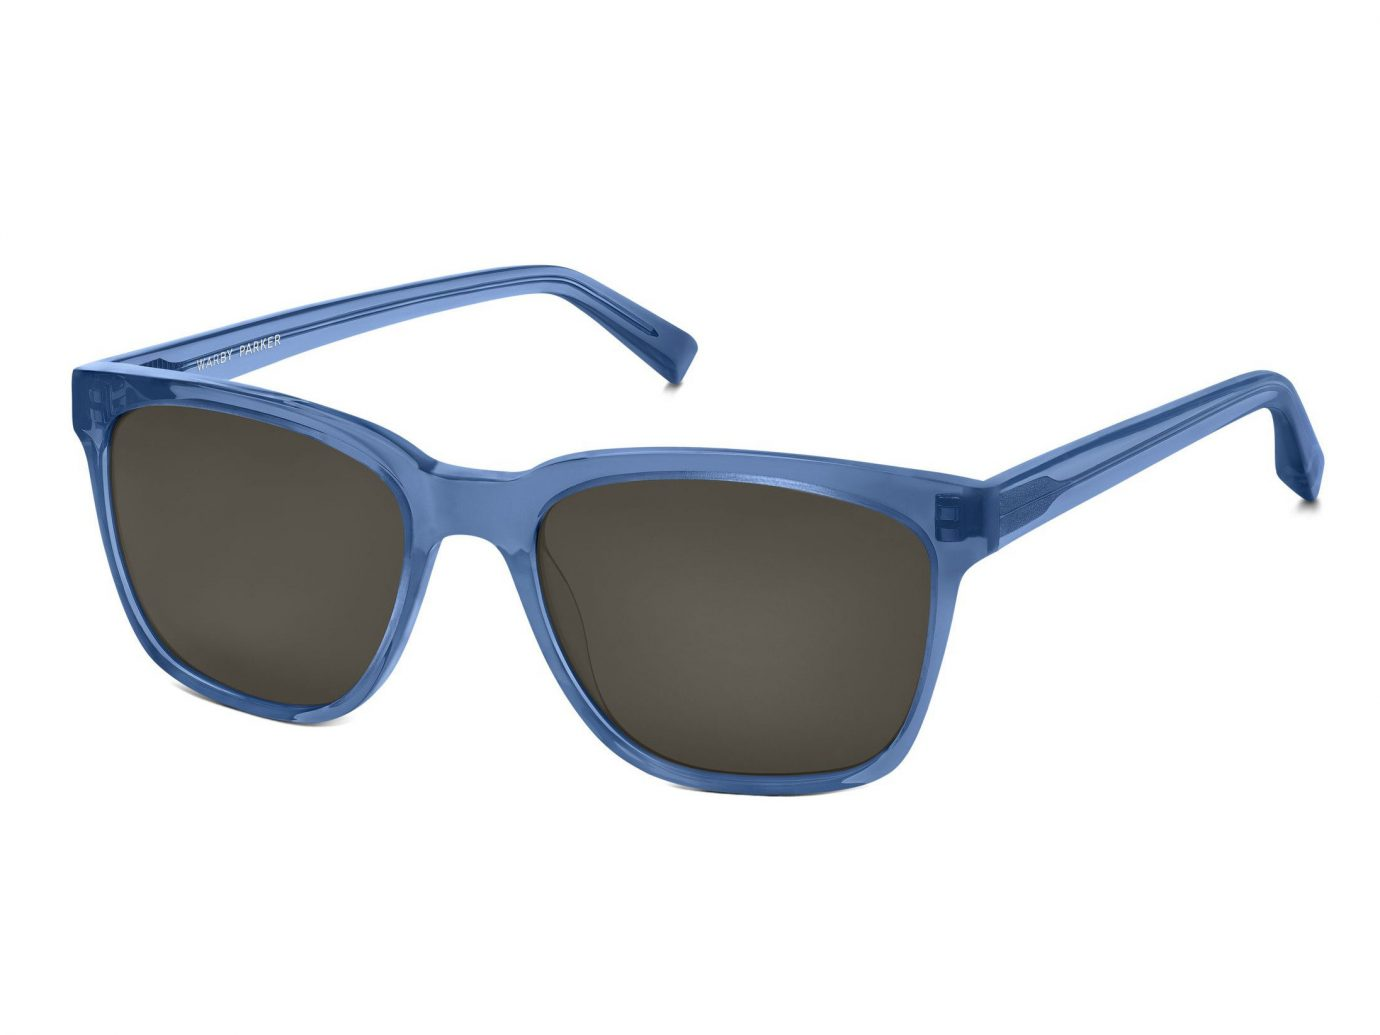 Beach Style + Design Travel Shop eyewear blue sunglasses vision care glasses azure goggles aqua product product design personal protective equipment electric blue font